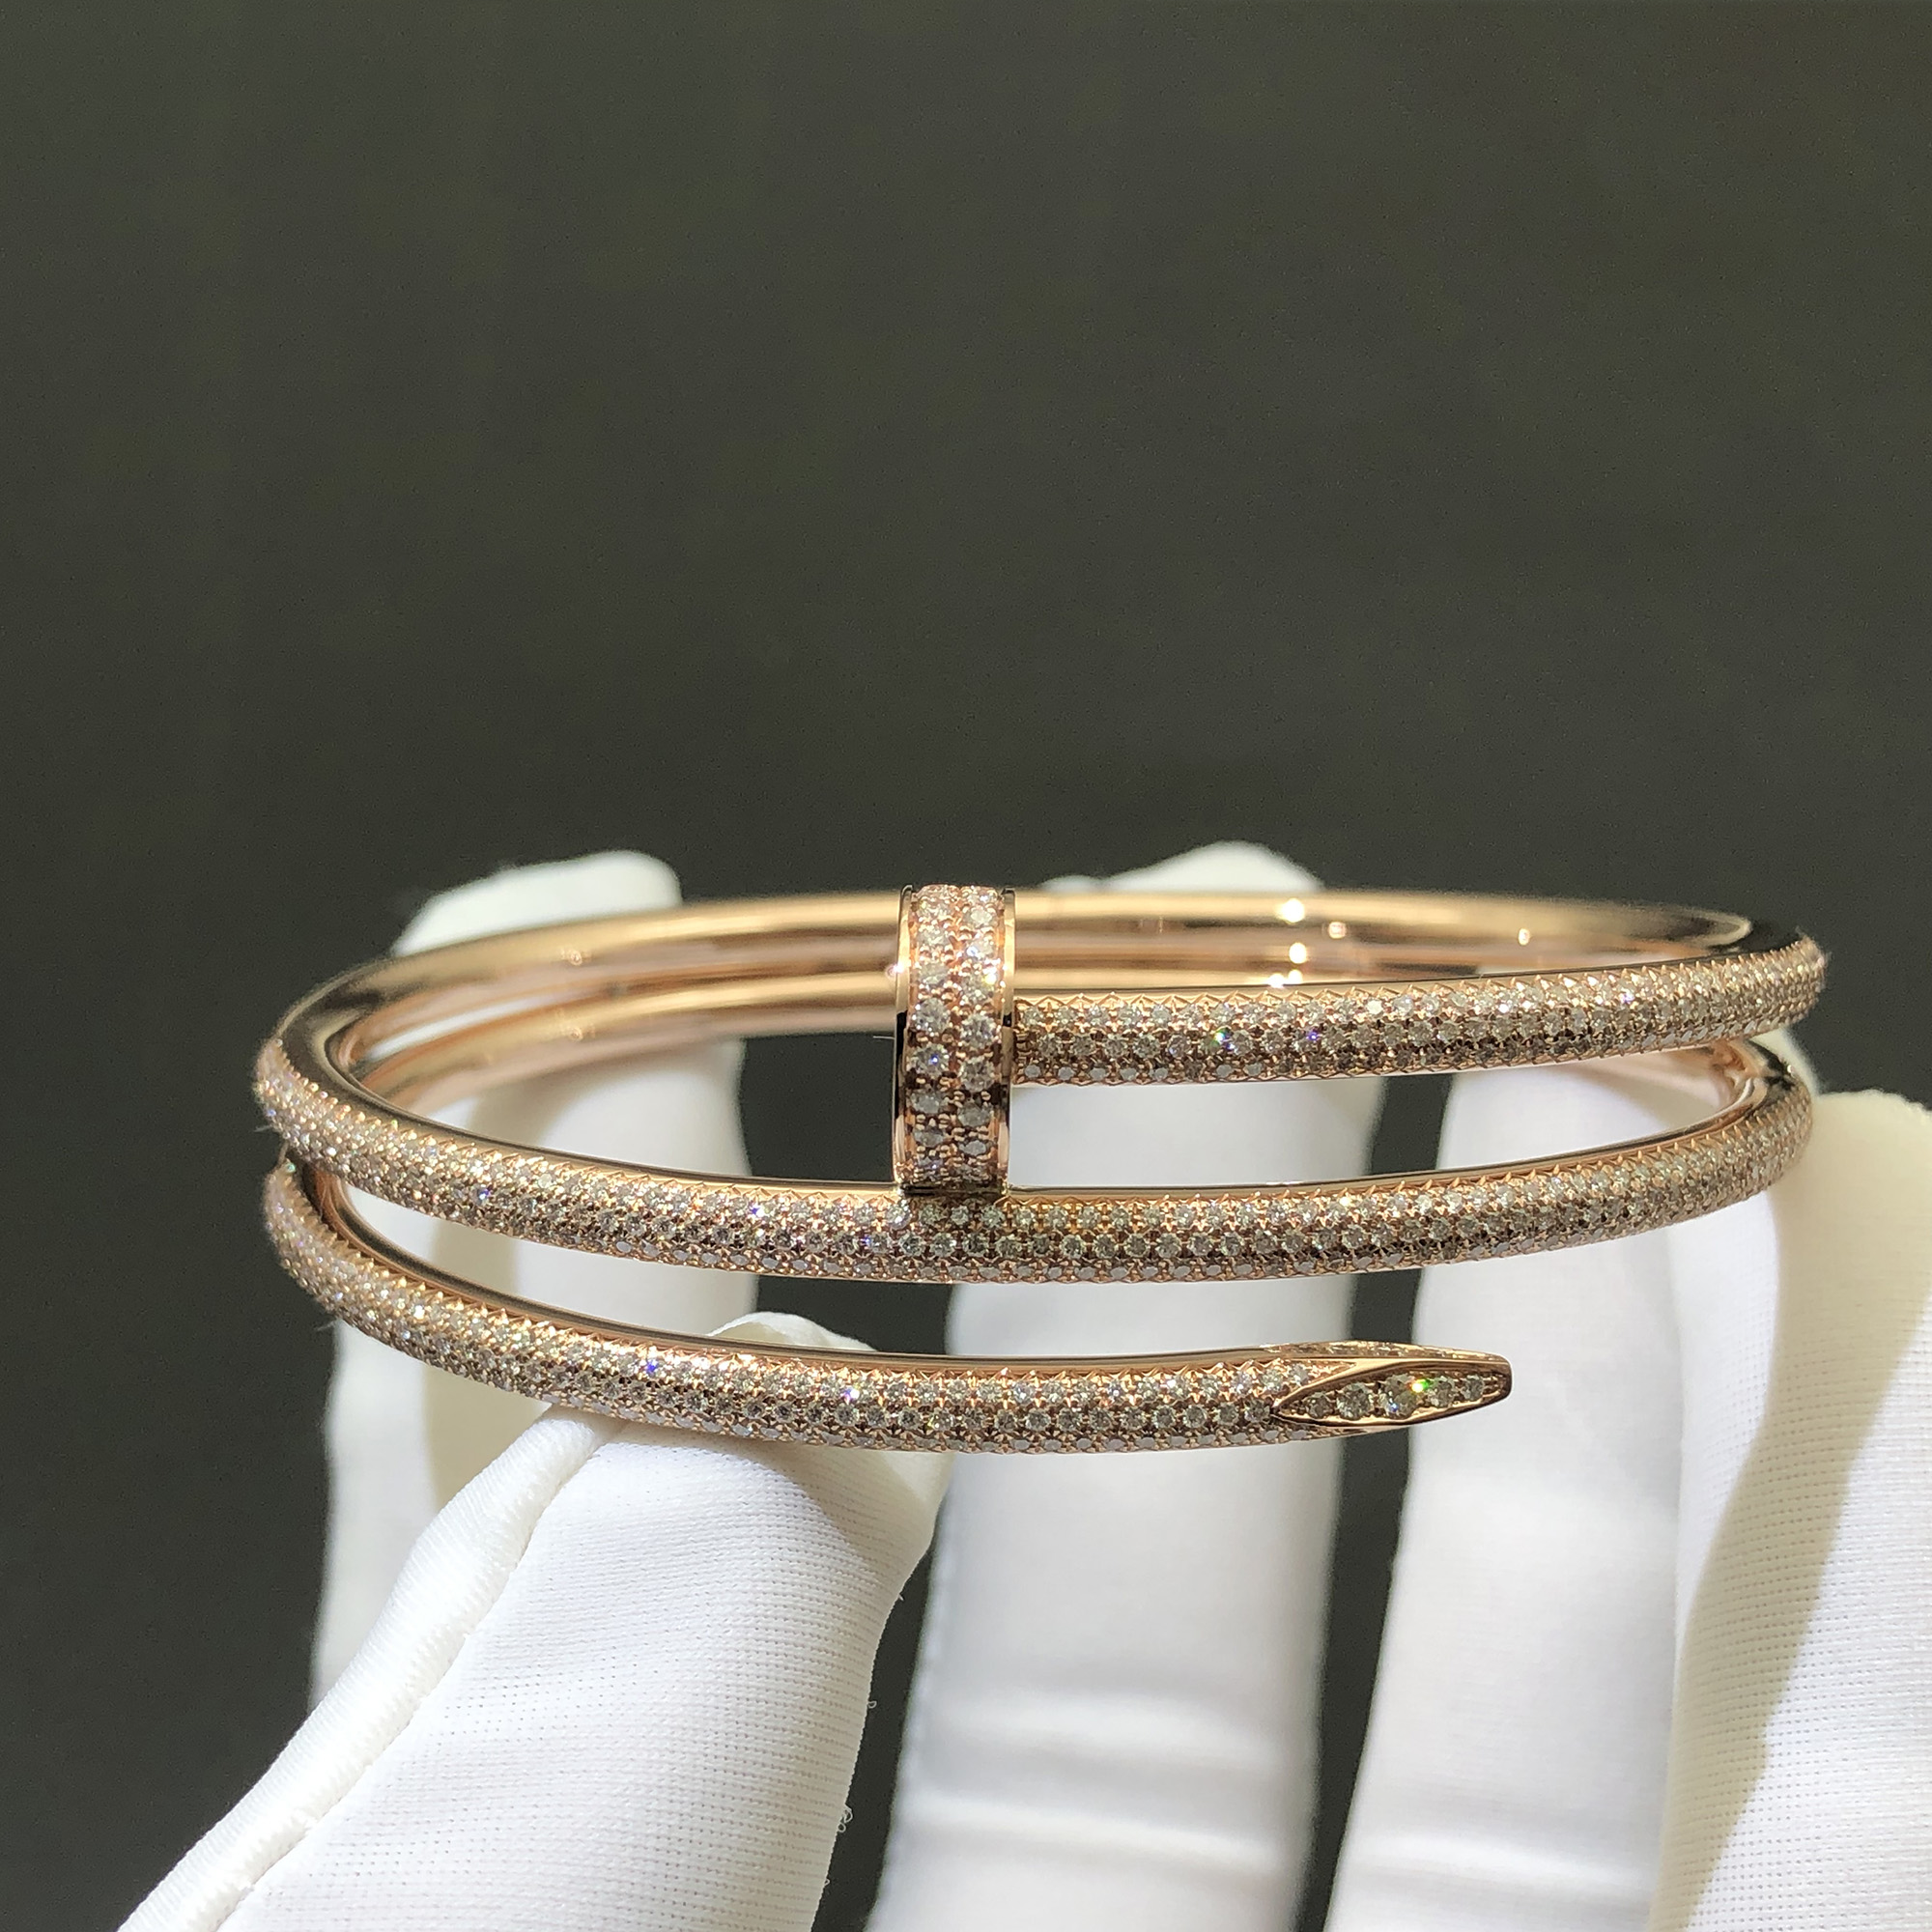 Inspired Juste un Clou Bracelet in 18K Pink Gold Set with 624 Brilliant-cut Diamonds